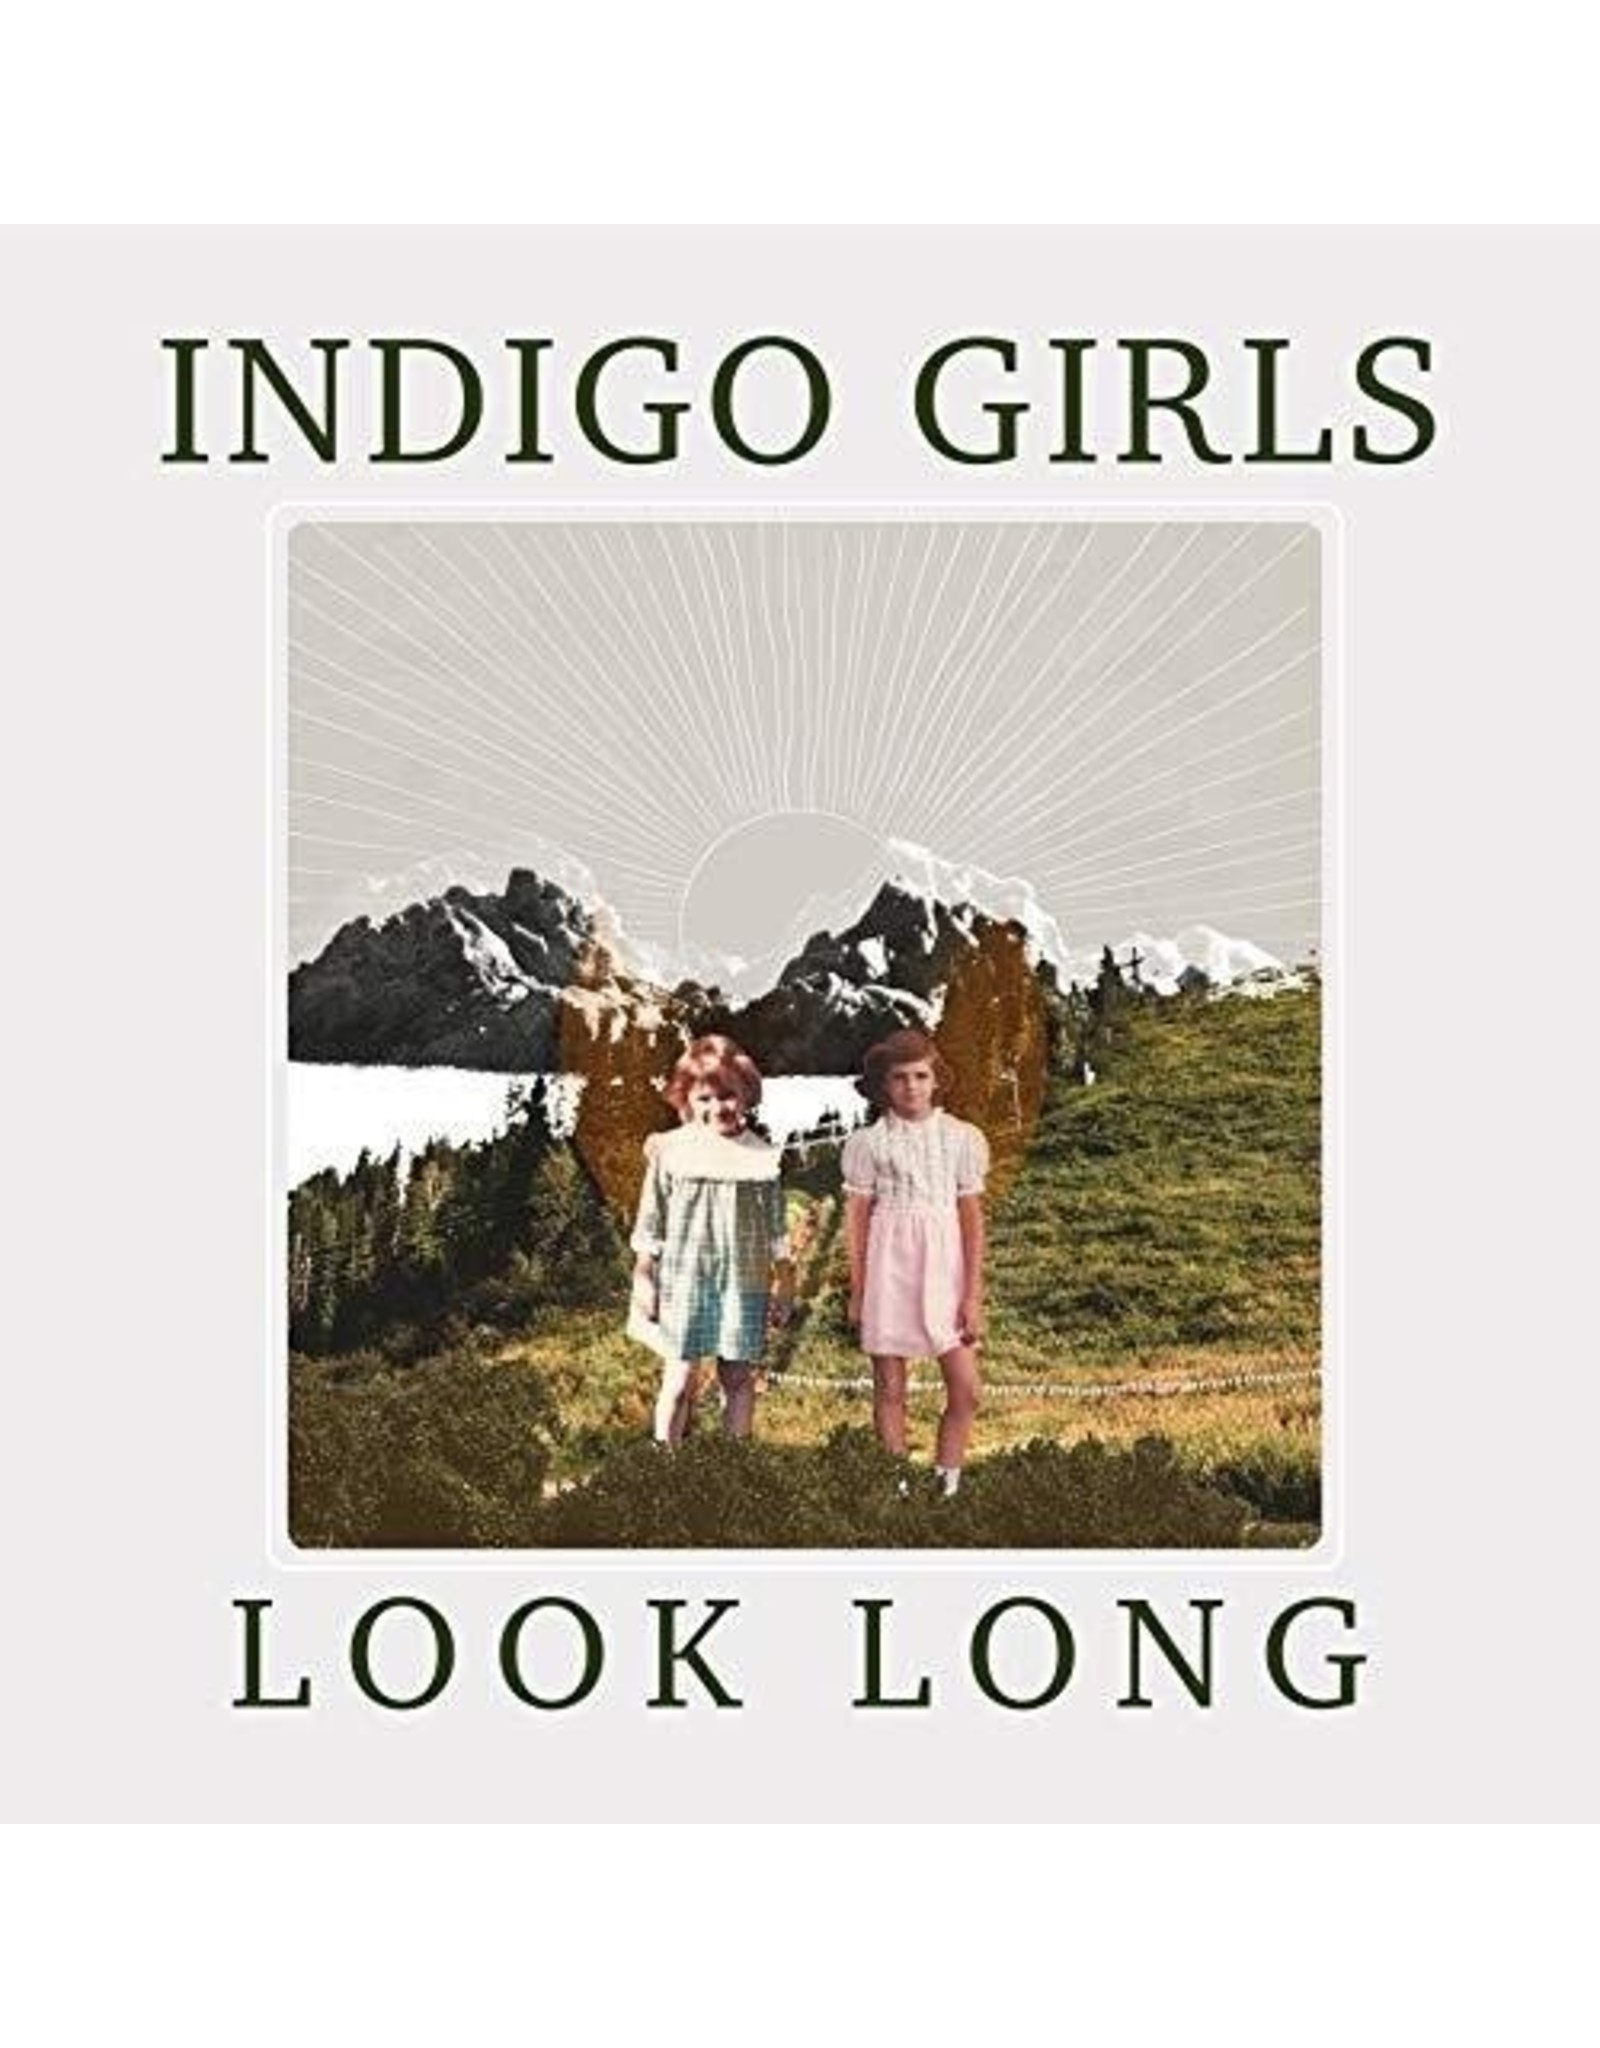 New Vinyl Indigo Girls - Look Long 2LP